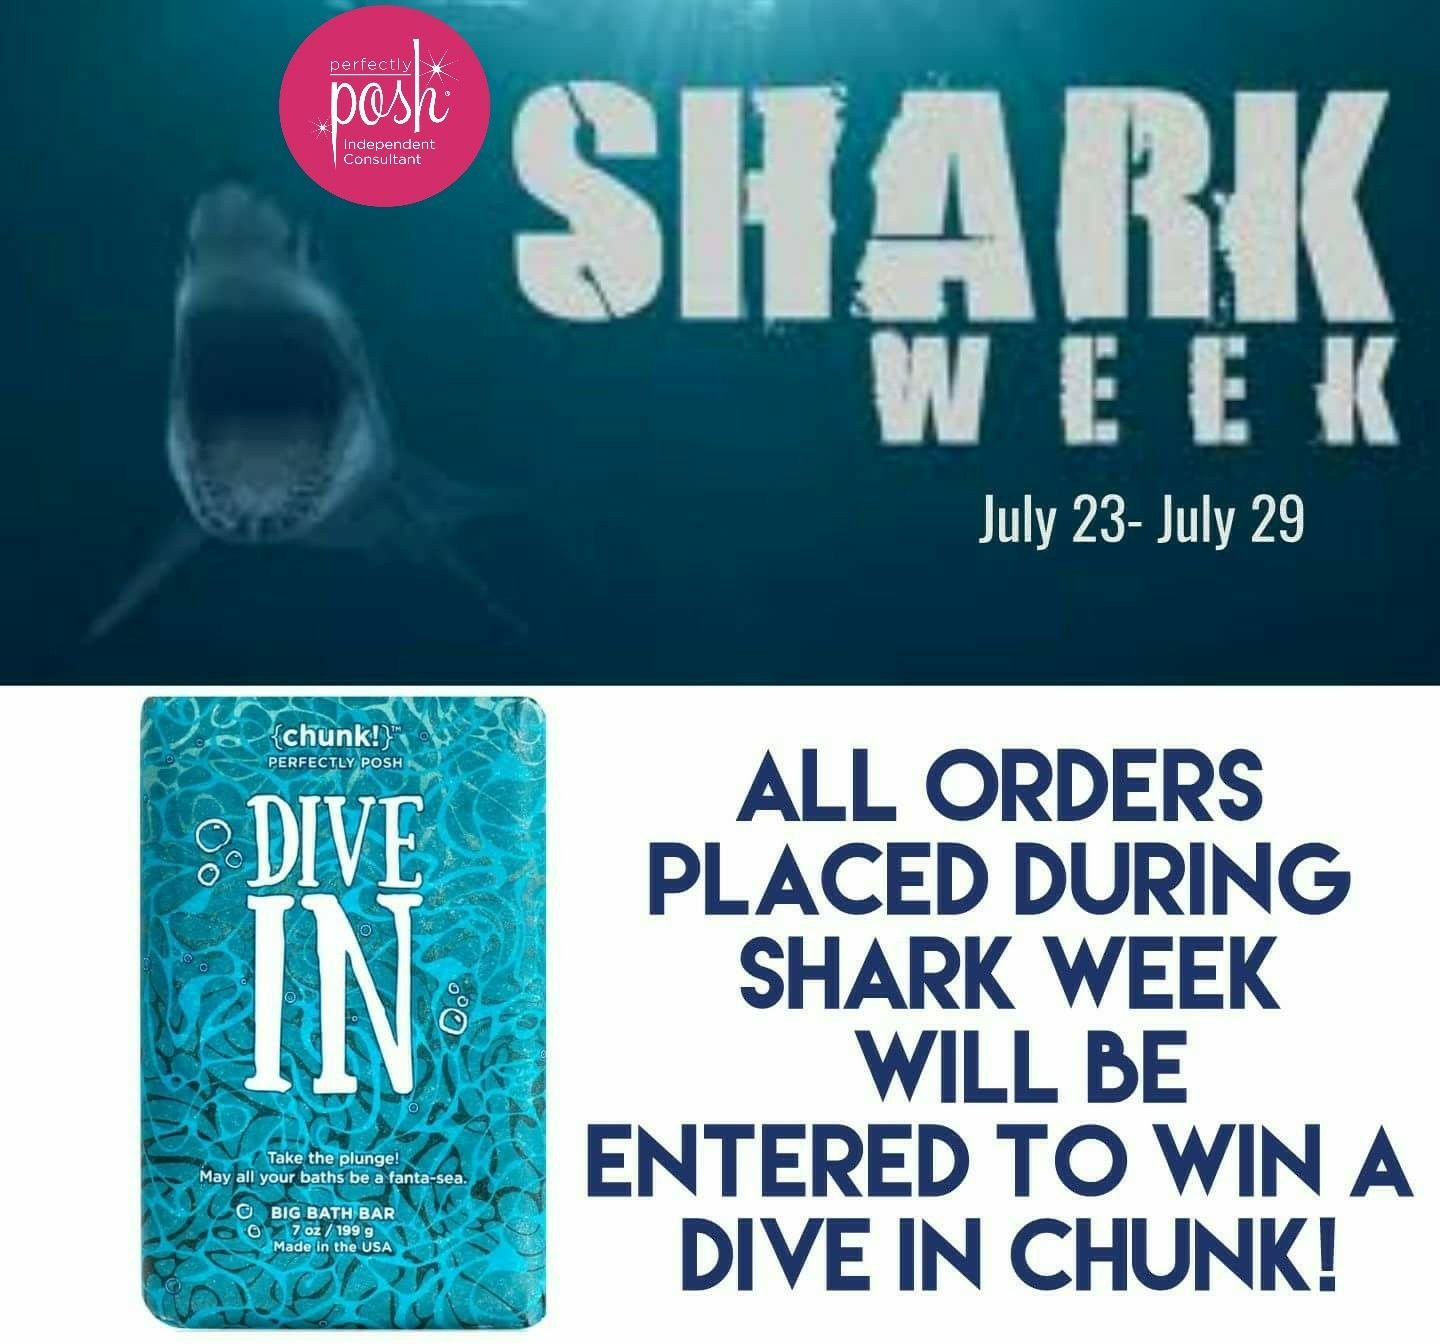 It's shark week! If you need some Posh this is a great time to stock up. Everyone who orders from me this week will be entered into a drawing for a free Dive In chunk! Hurry before this offer swims away! Https://SamanthaHudsonMO.po.sh